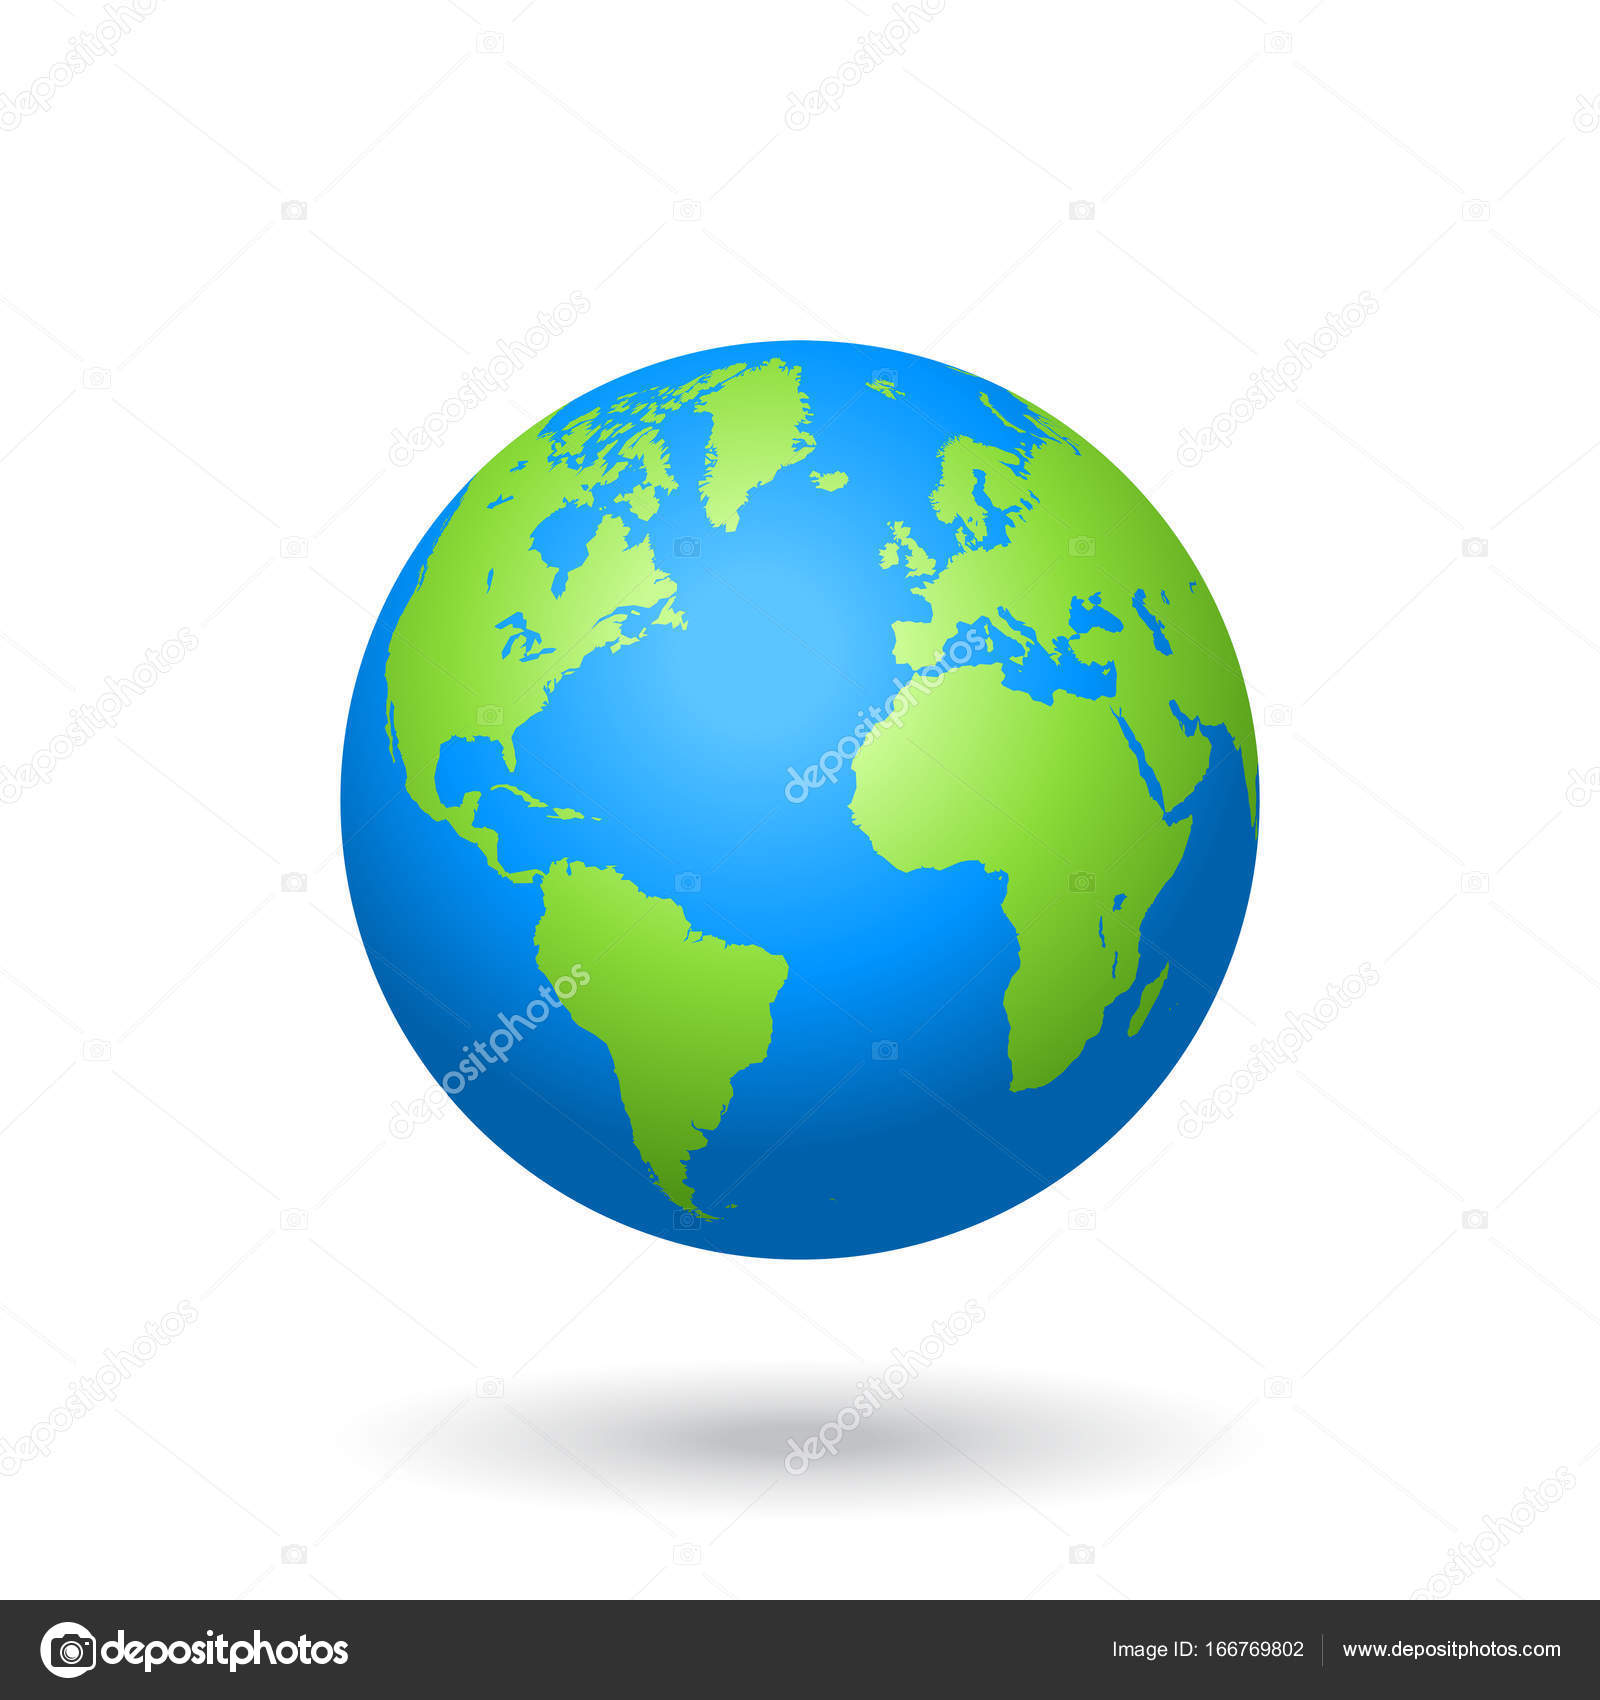 Vector globe colored world map stock vector pingebat 166769802 detailed colored world map mapped on a globe isolated on white background vector by pingebat gumiabroncs Image collections